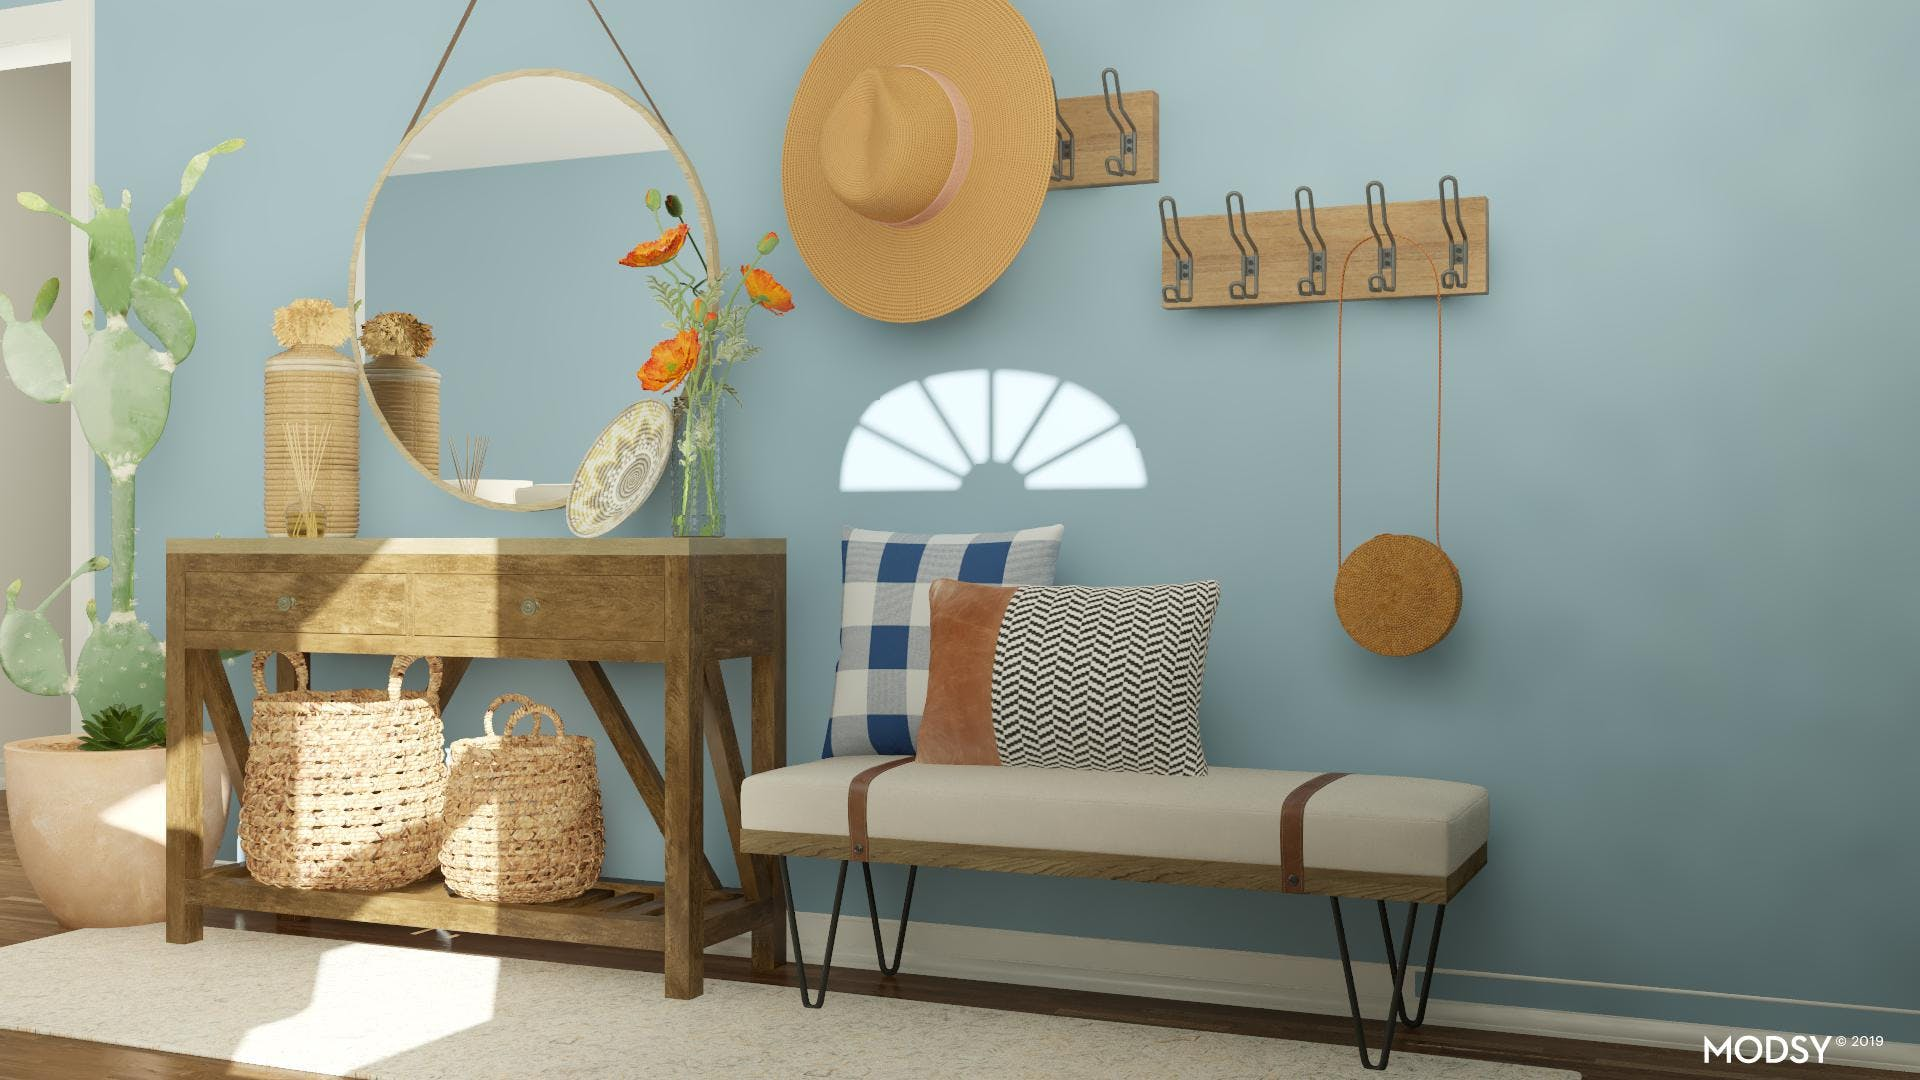 A Bright, Rustic Welcome